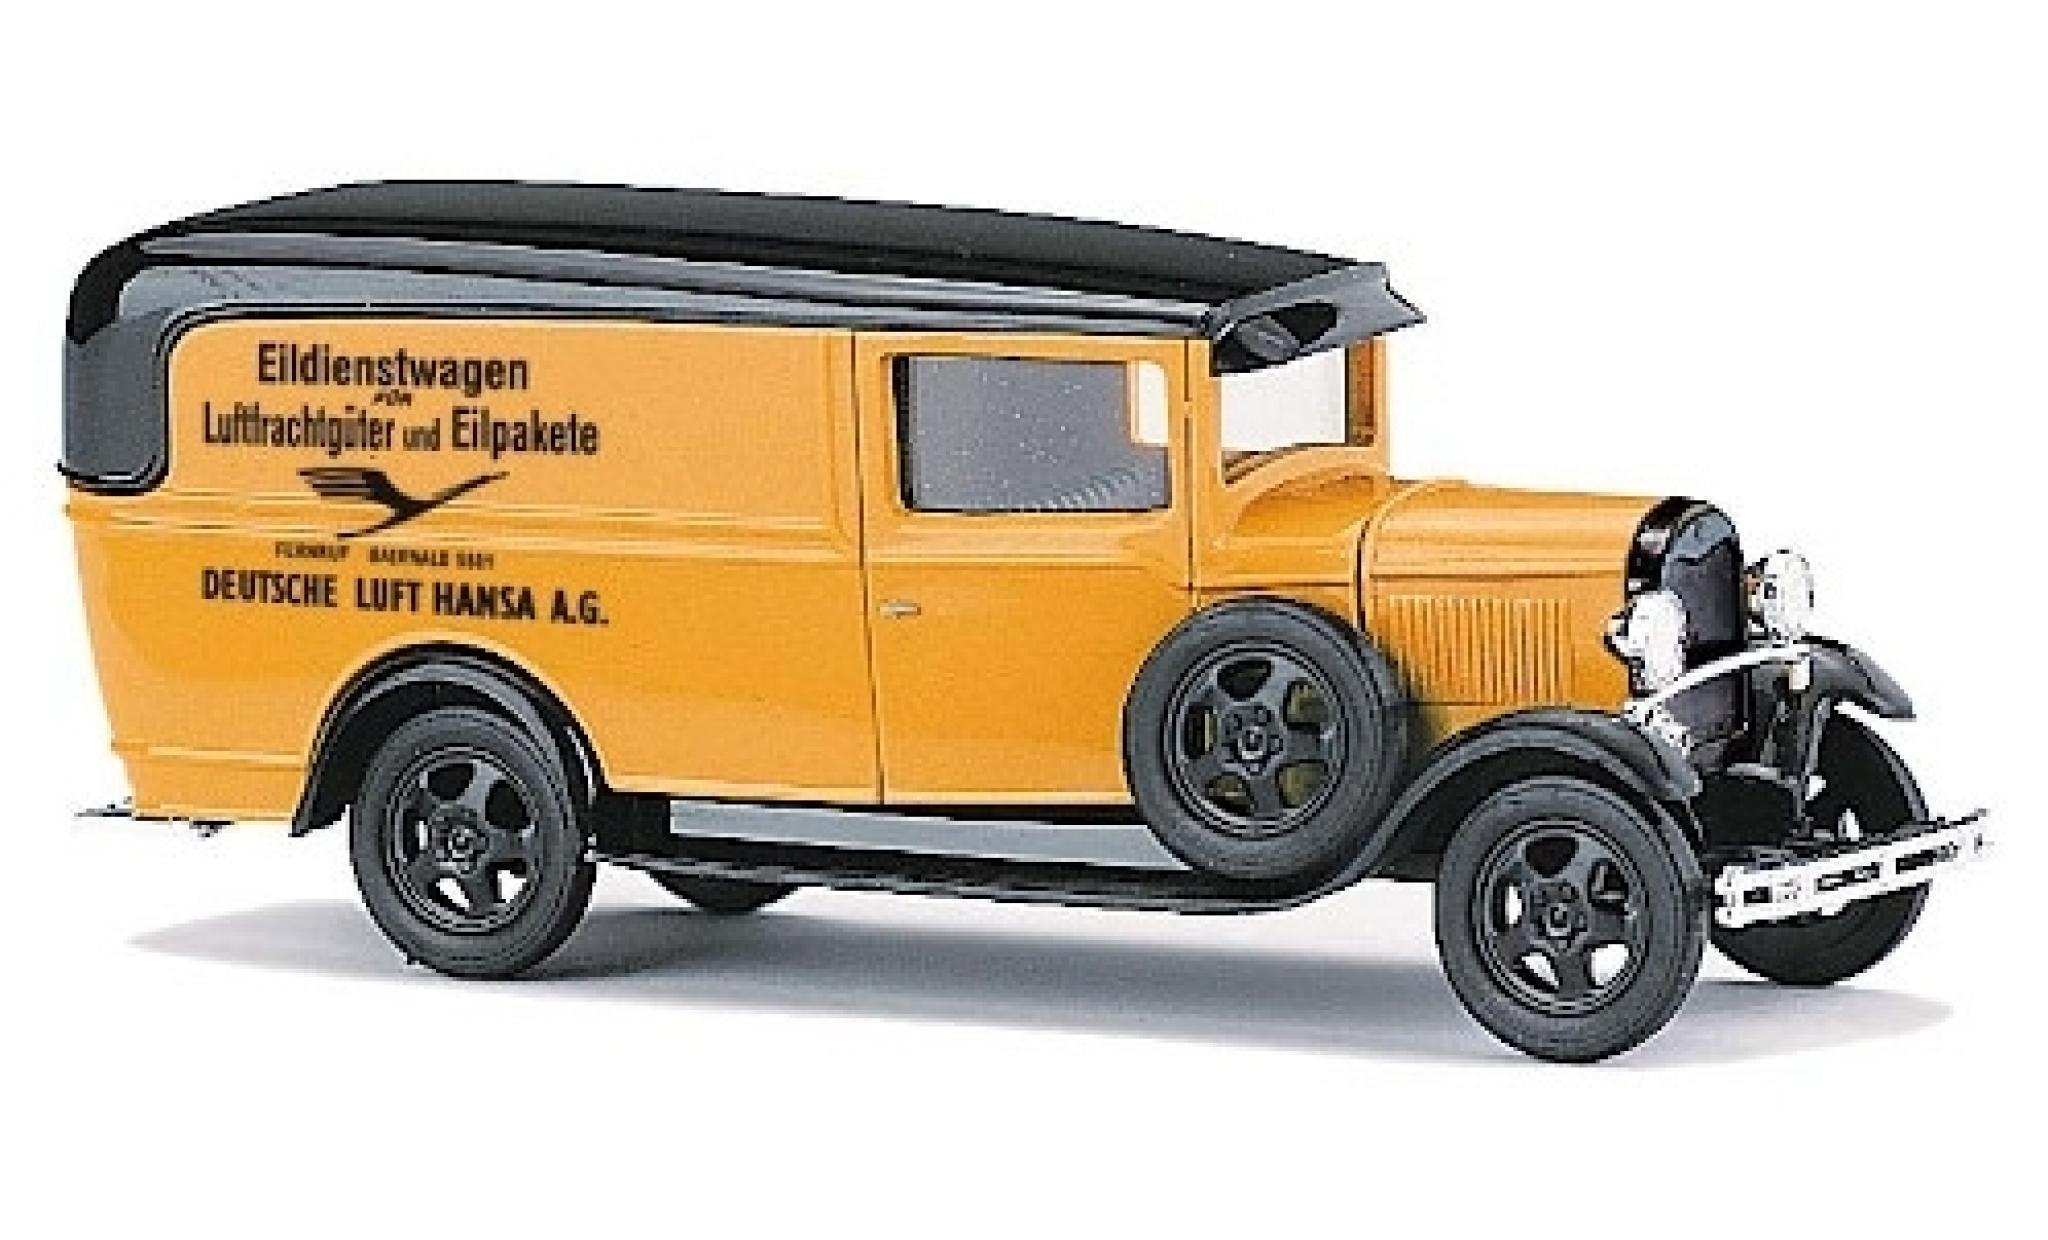 Ford Model A 1/87 Busch A Deutsche Lufthansa Eildienstwagen